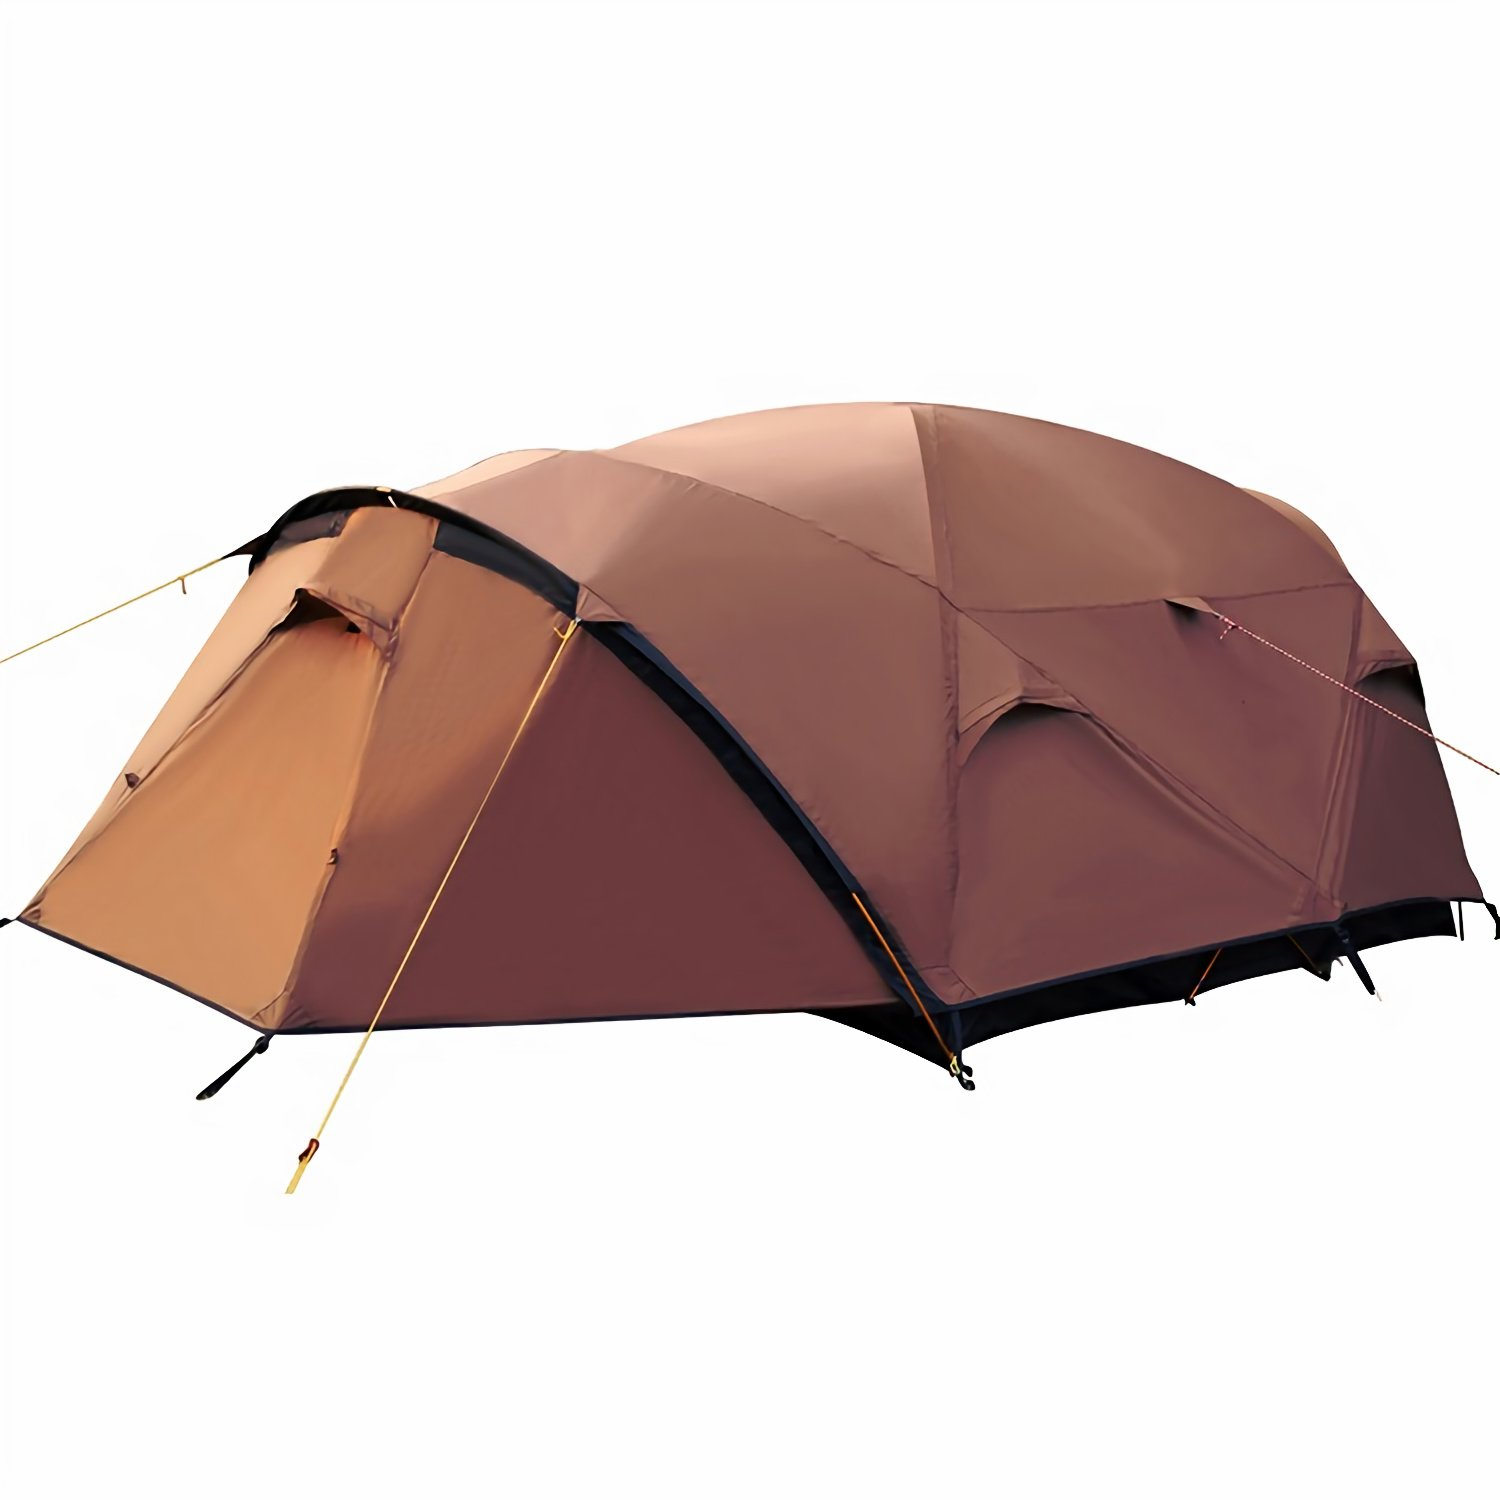 GEERTOP Large Tent for 4 Person Waterproof Canvas Family